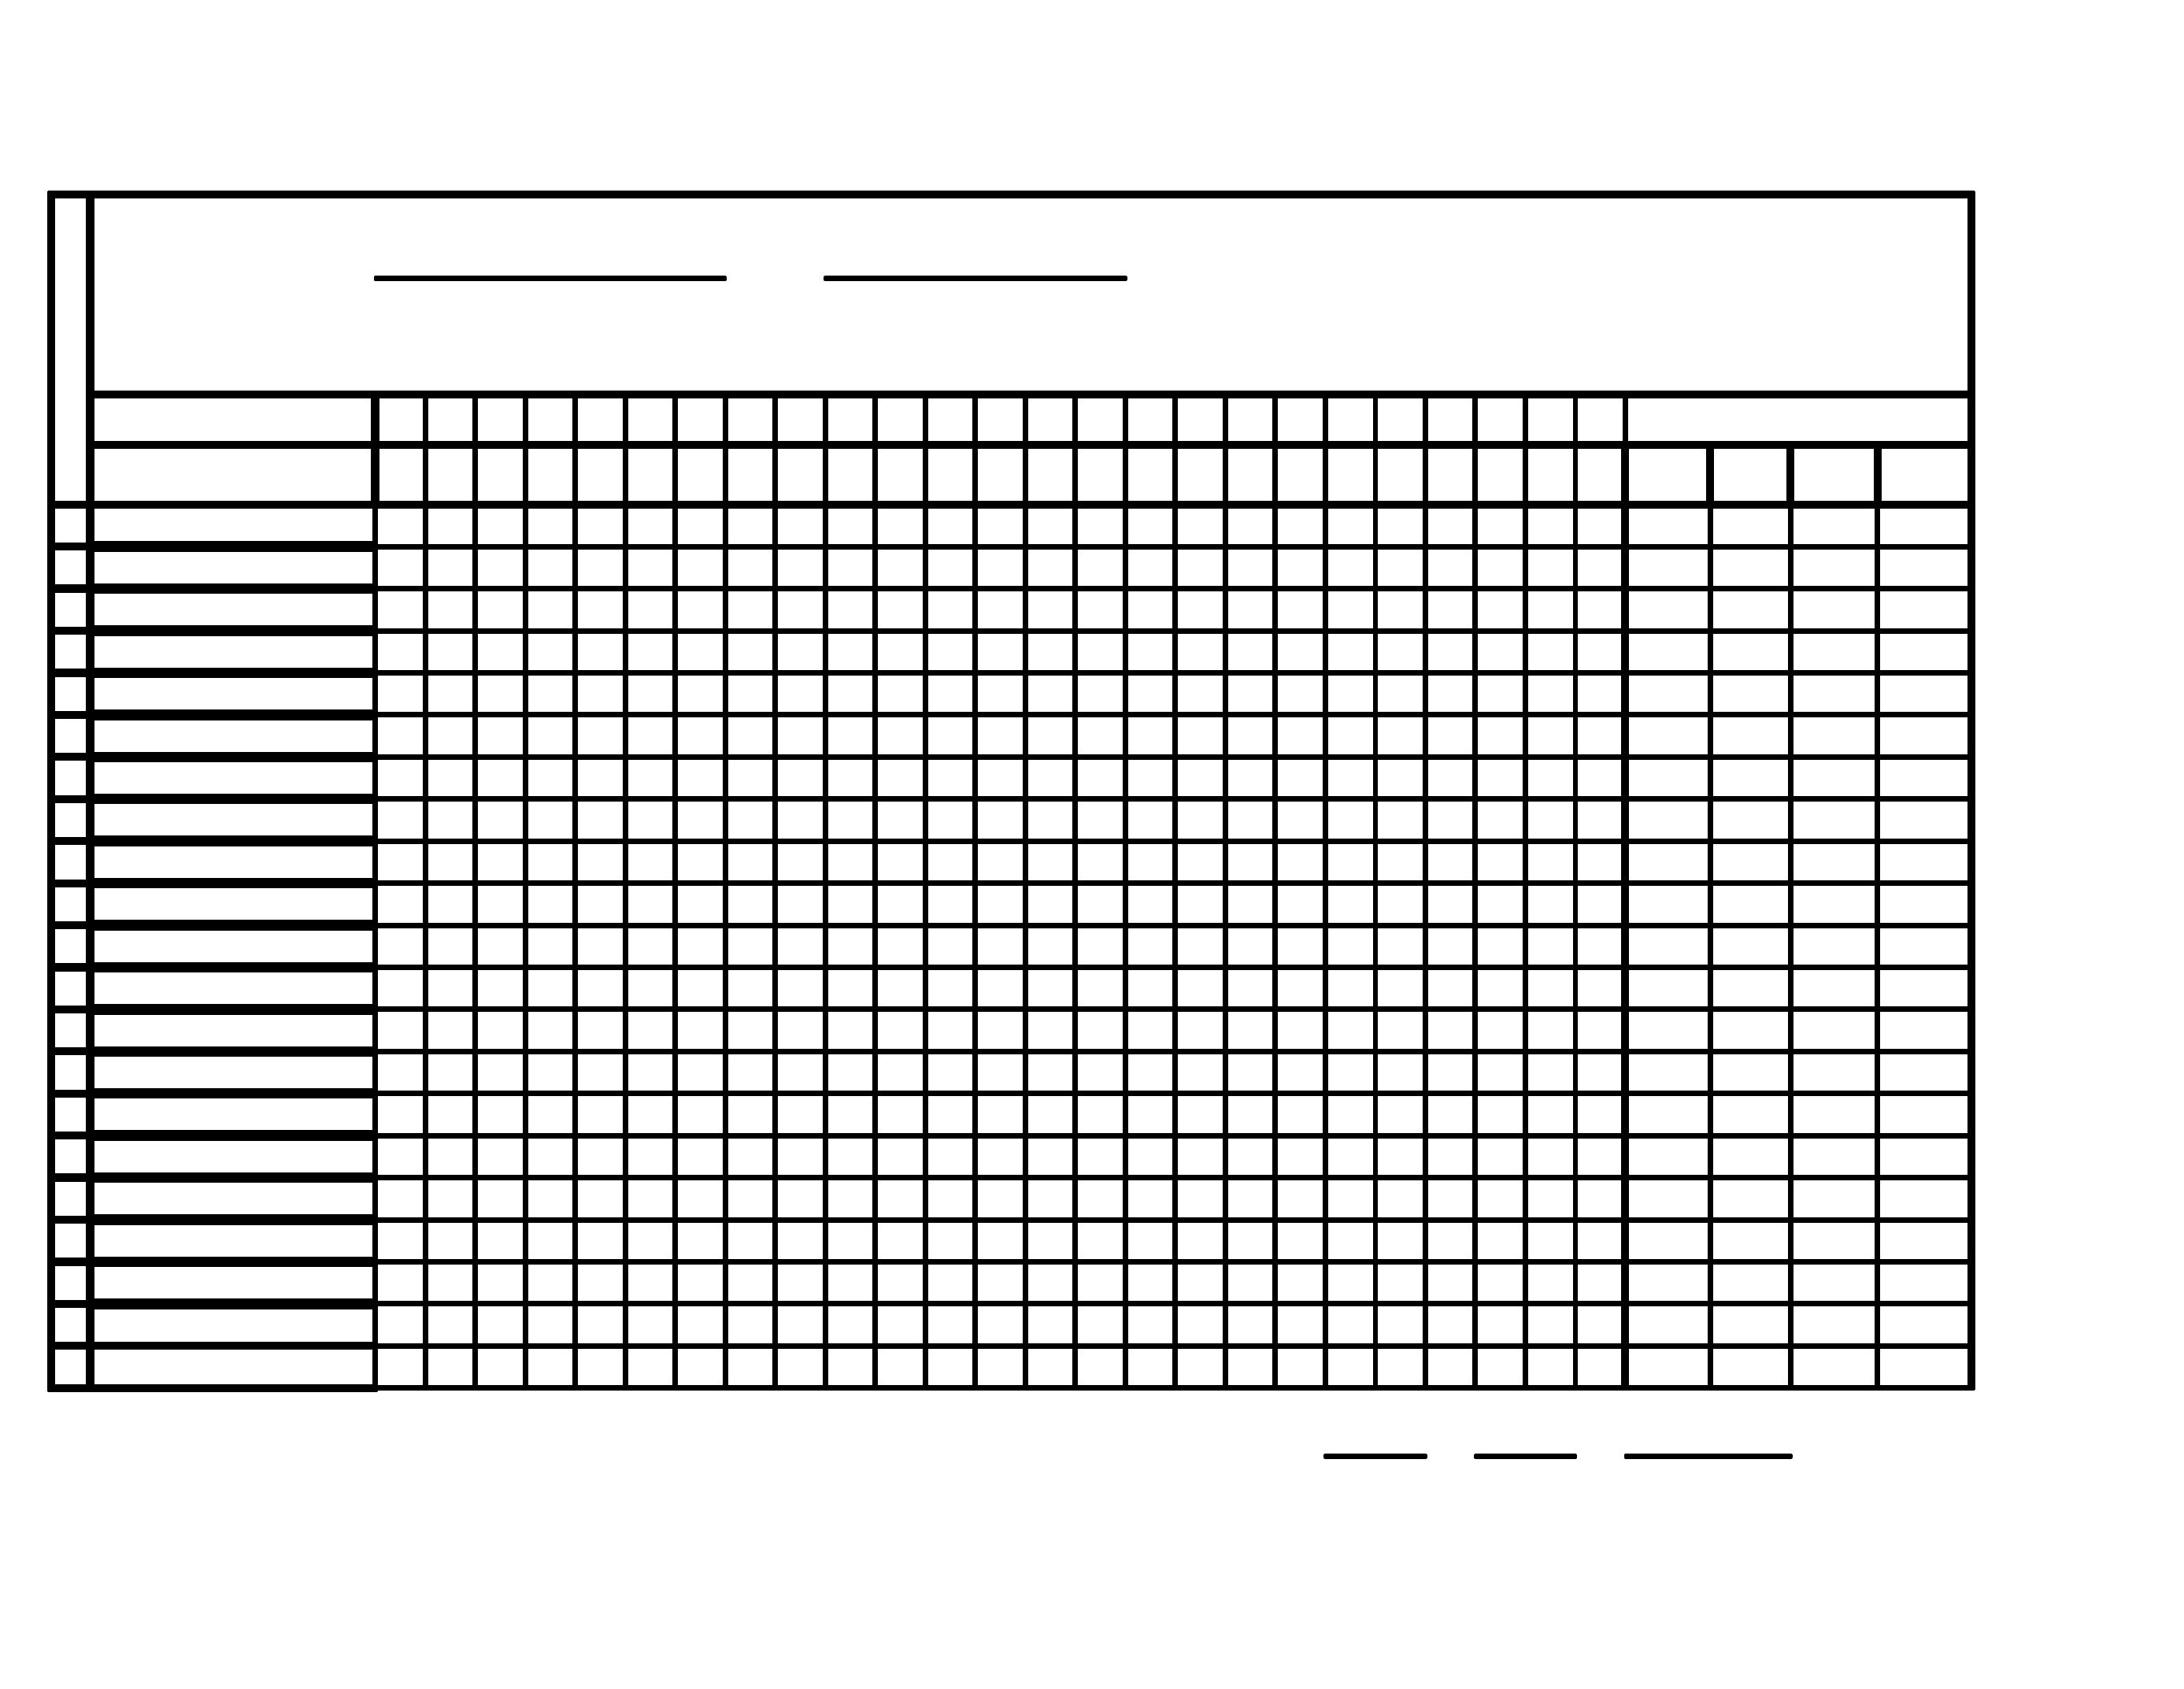 Monthly Attendance Sheet  Downloadable Attendance Sheet